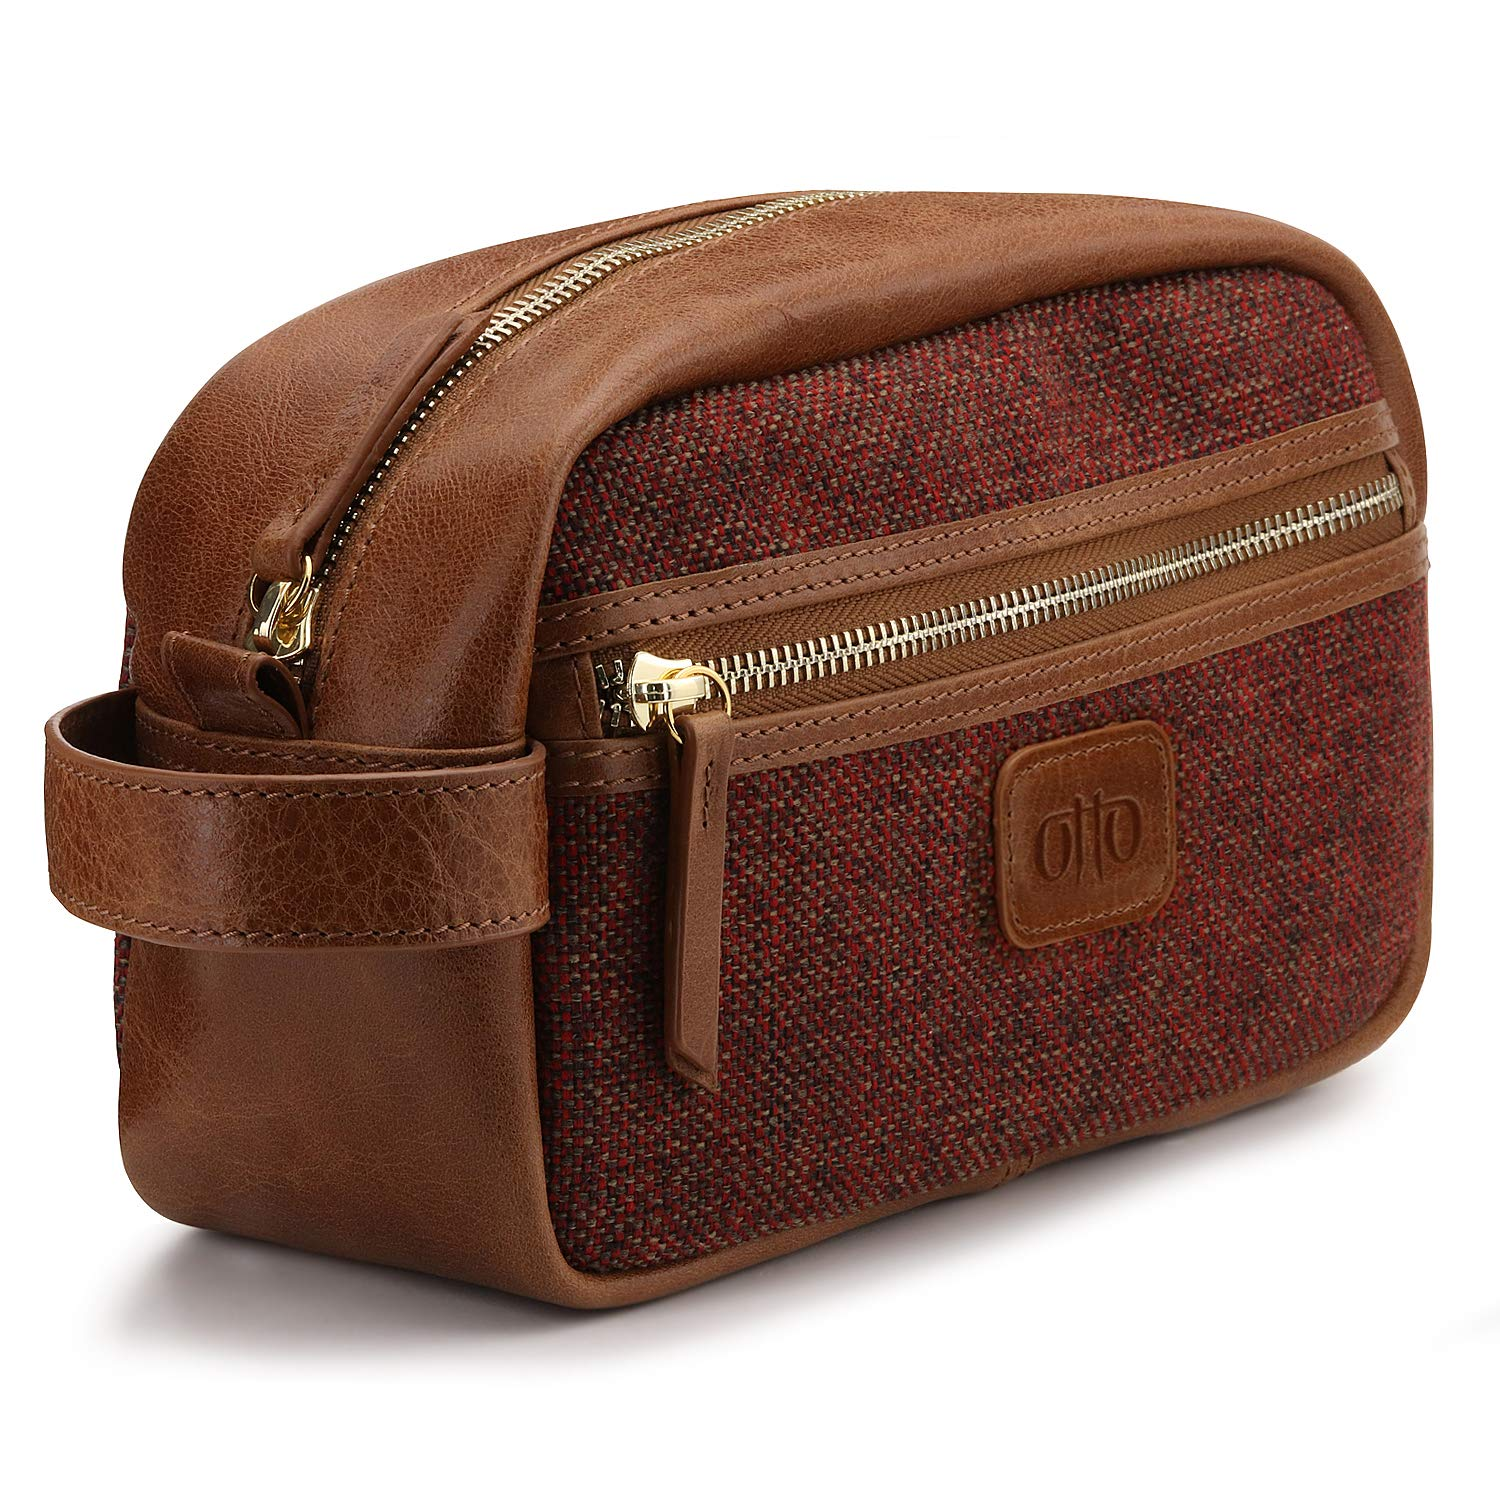 7f9d6bfe9a90 Amazon.com   Otto Leather Genuine Leather Travel Toiletry